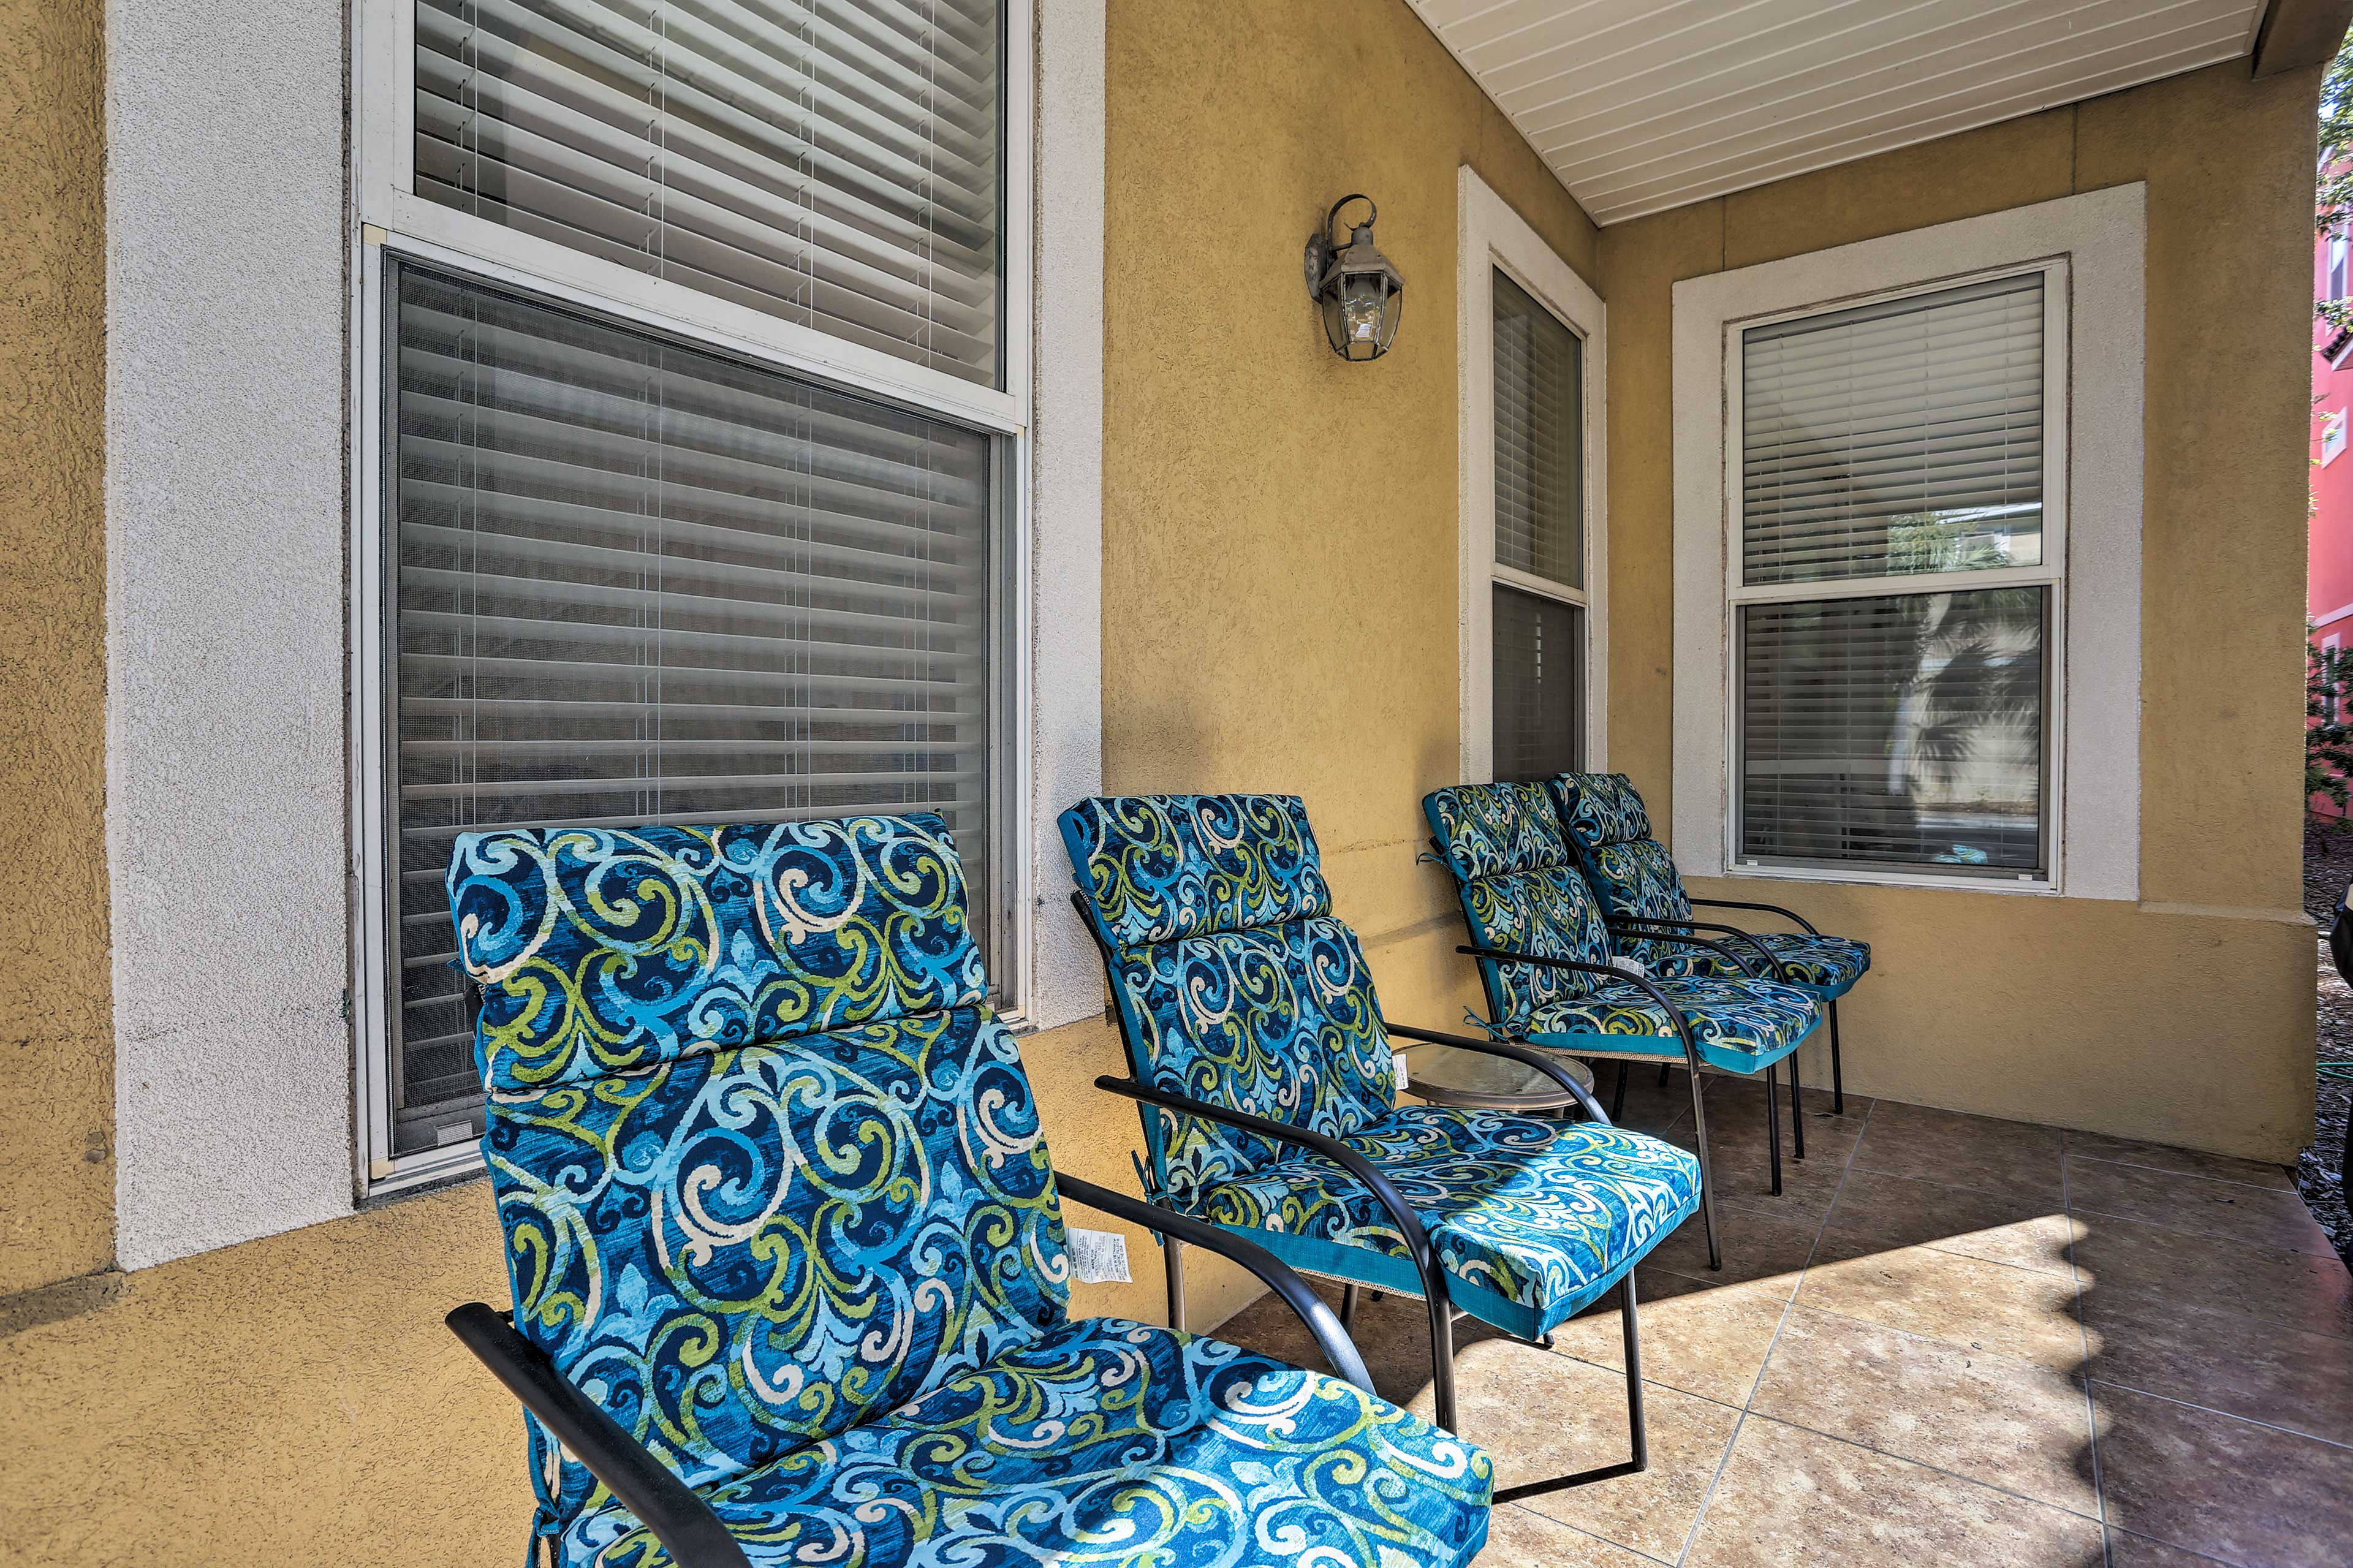 The patio is complete with 4 lounge chairs.